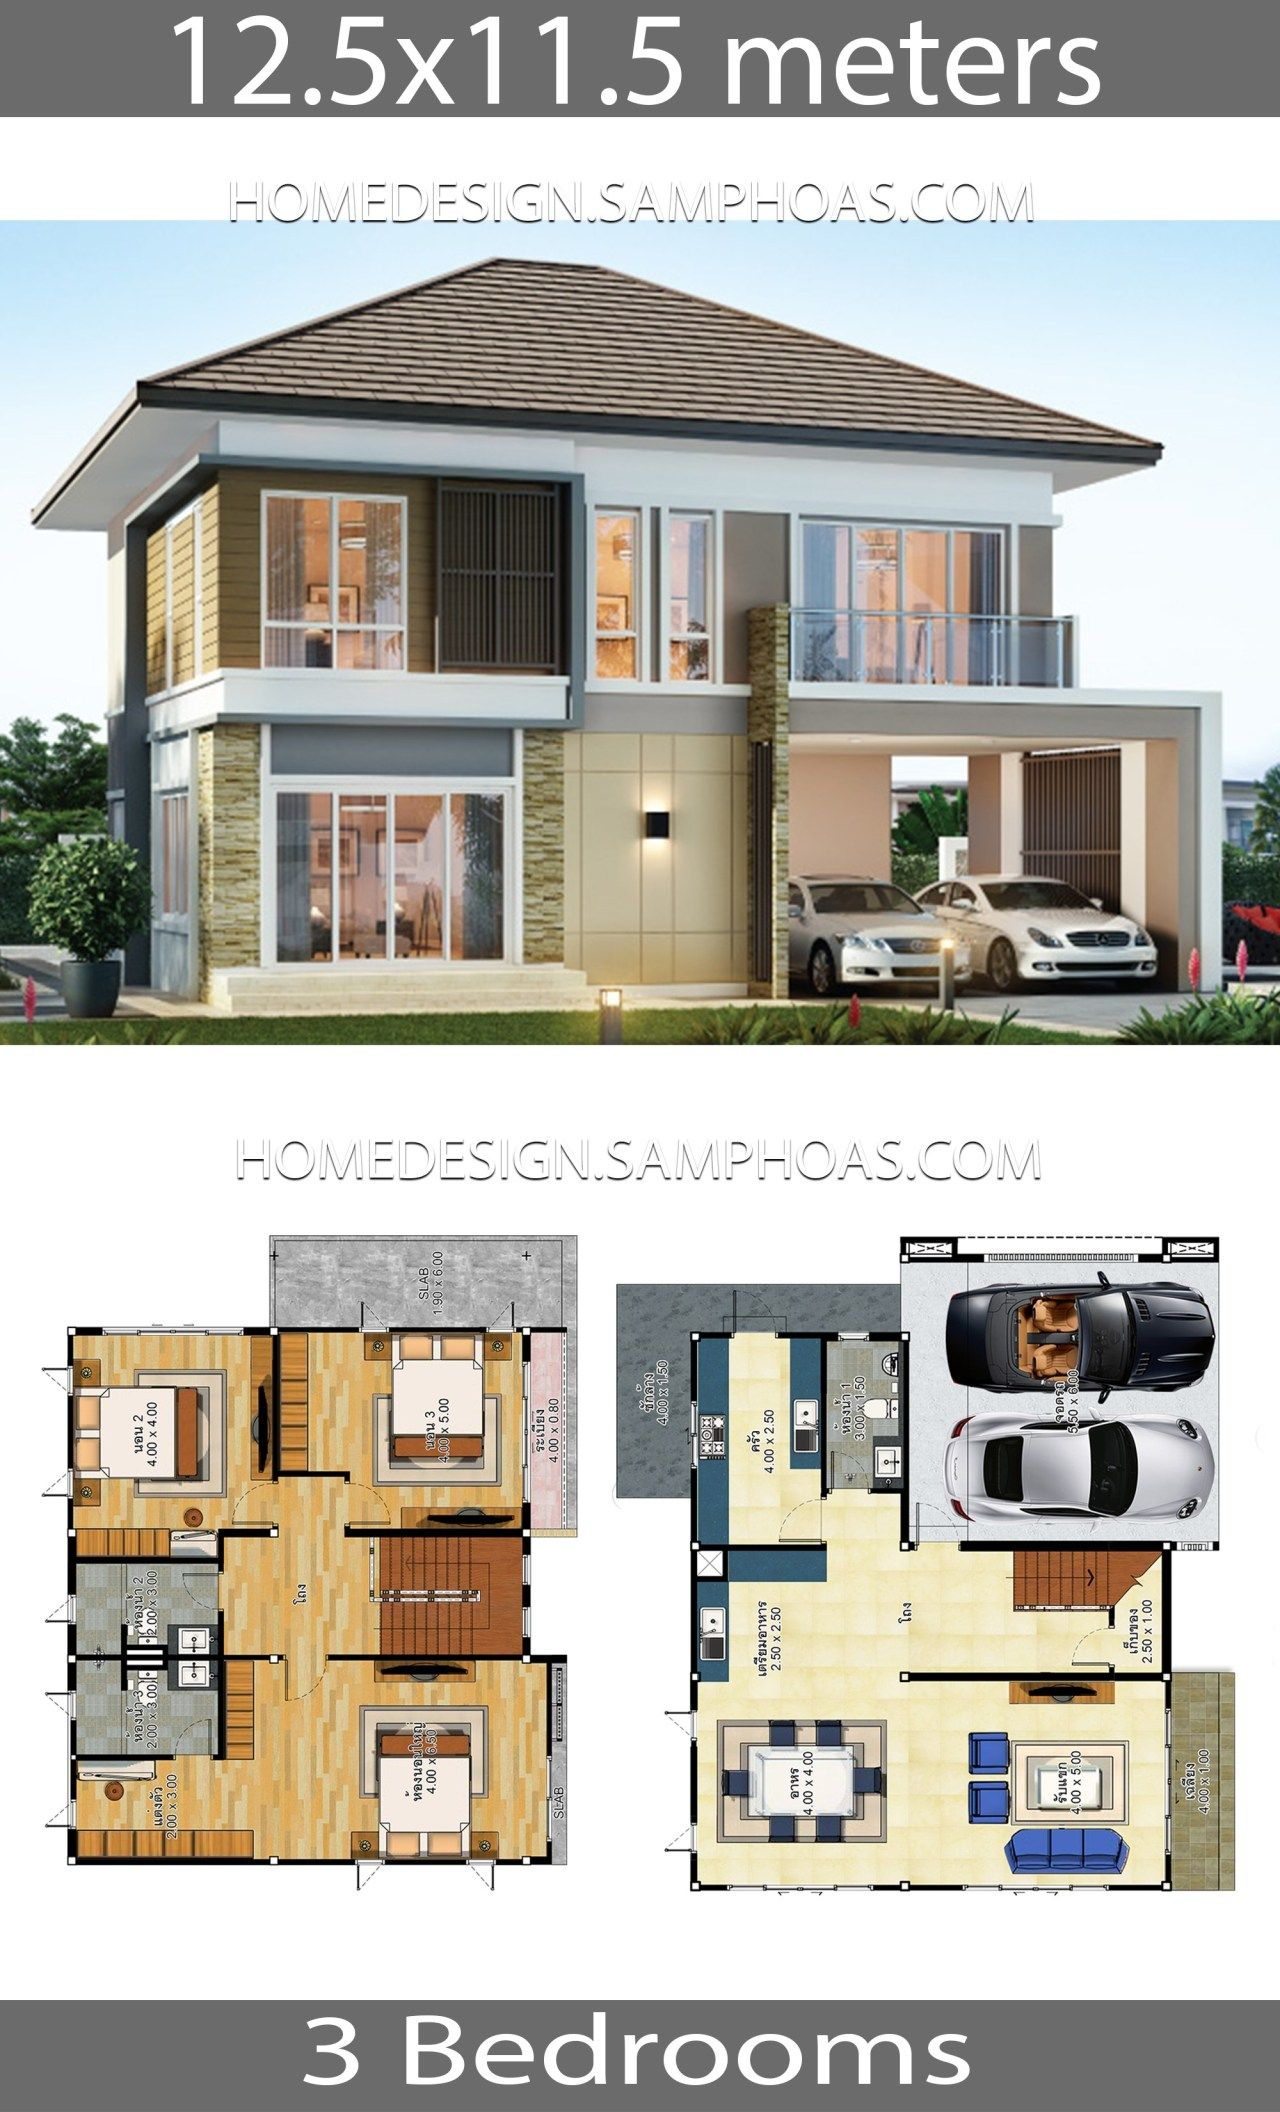 House Plans Idea 12 5x11 5 With 3 Bedrooms Home Ideas Loft House Design House Plans House Layout Plans